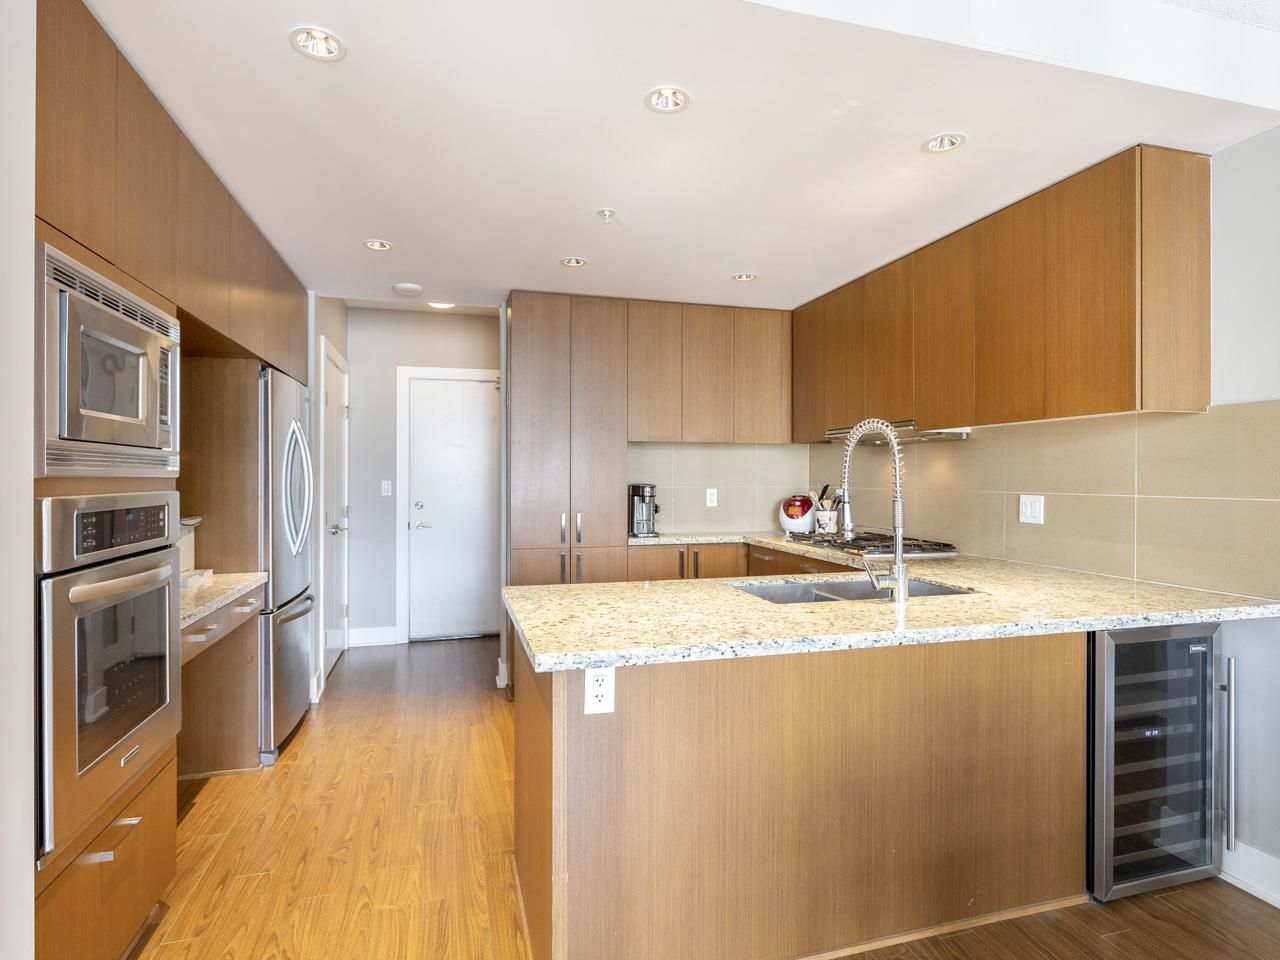 """Main Photo: 2706 1155 THE HIGH Street in Coquitlam: North Coquitlam Condo for sale in """"M ONE"""" : MLS®# R2388441"""